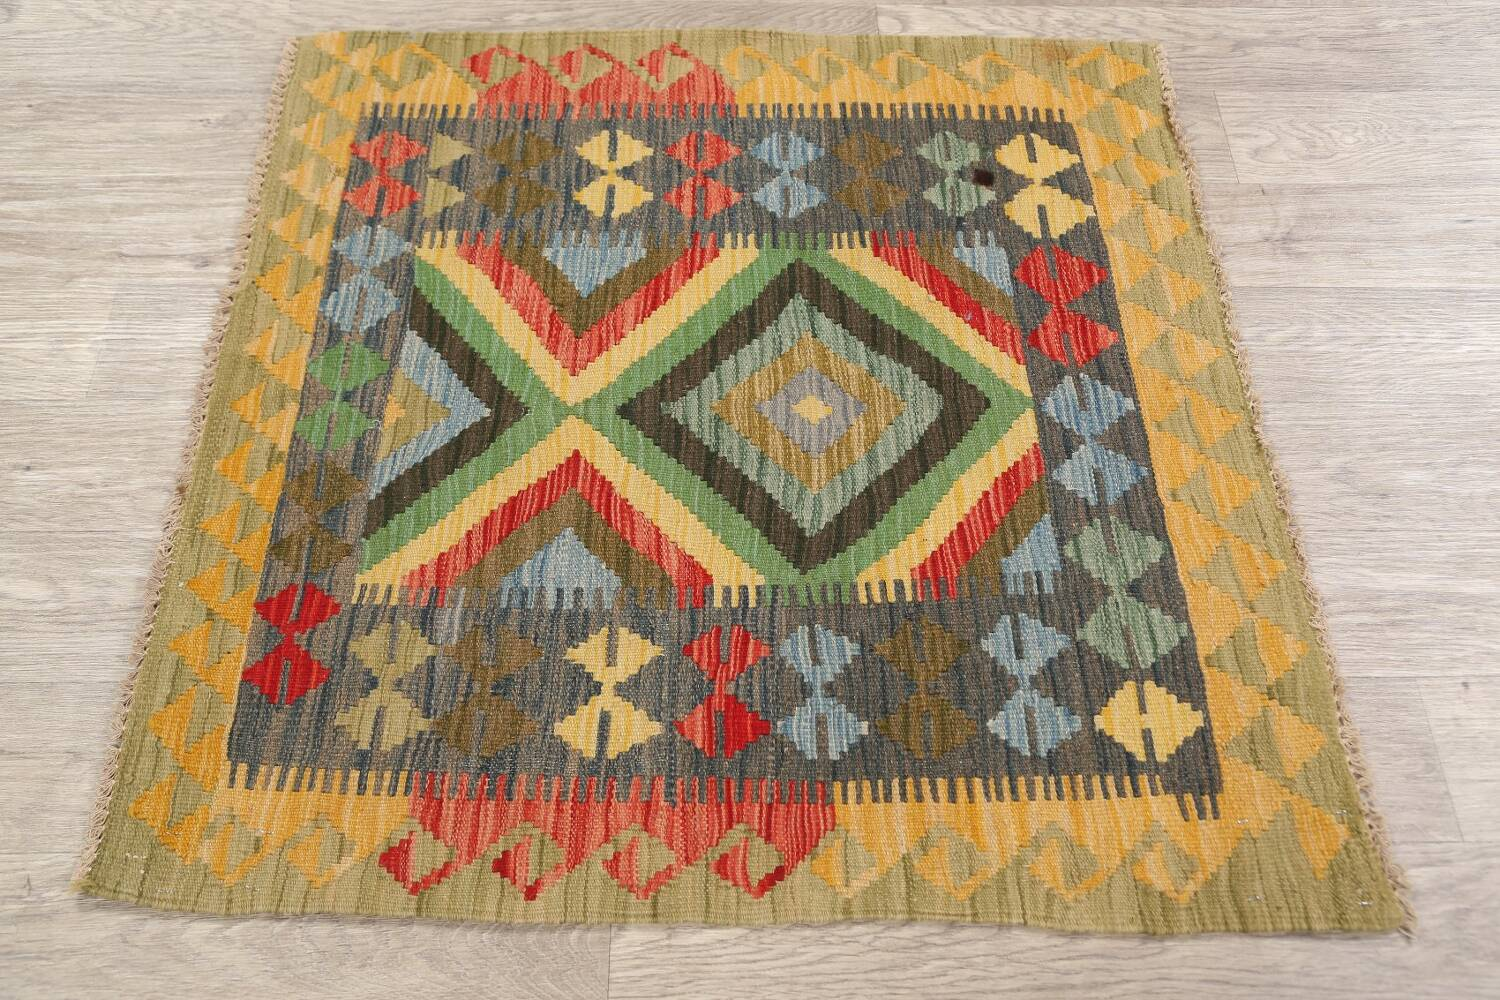 South-Western Reversible Kilim Oriental Area Rug 3x3 Square image 11